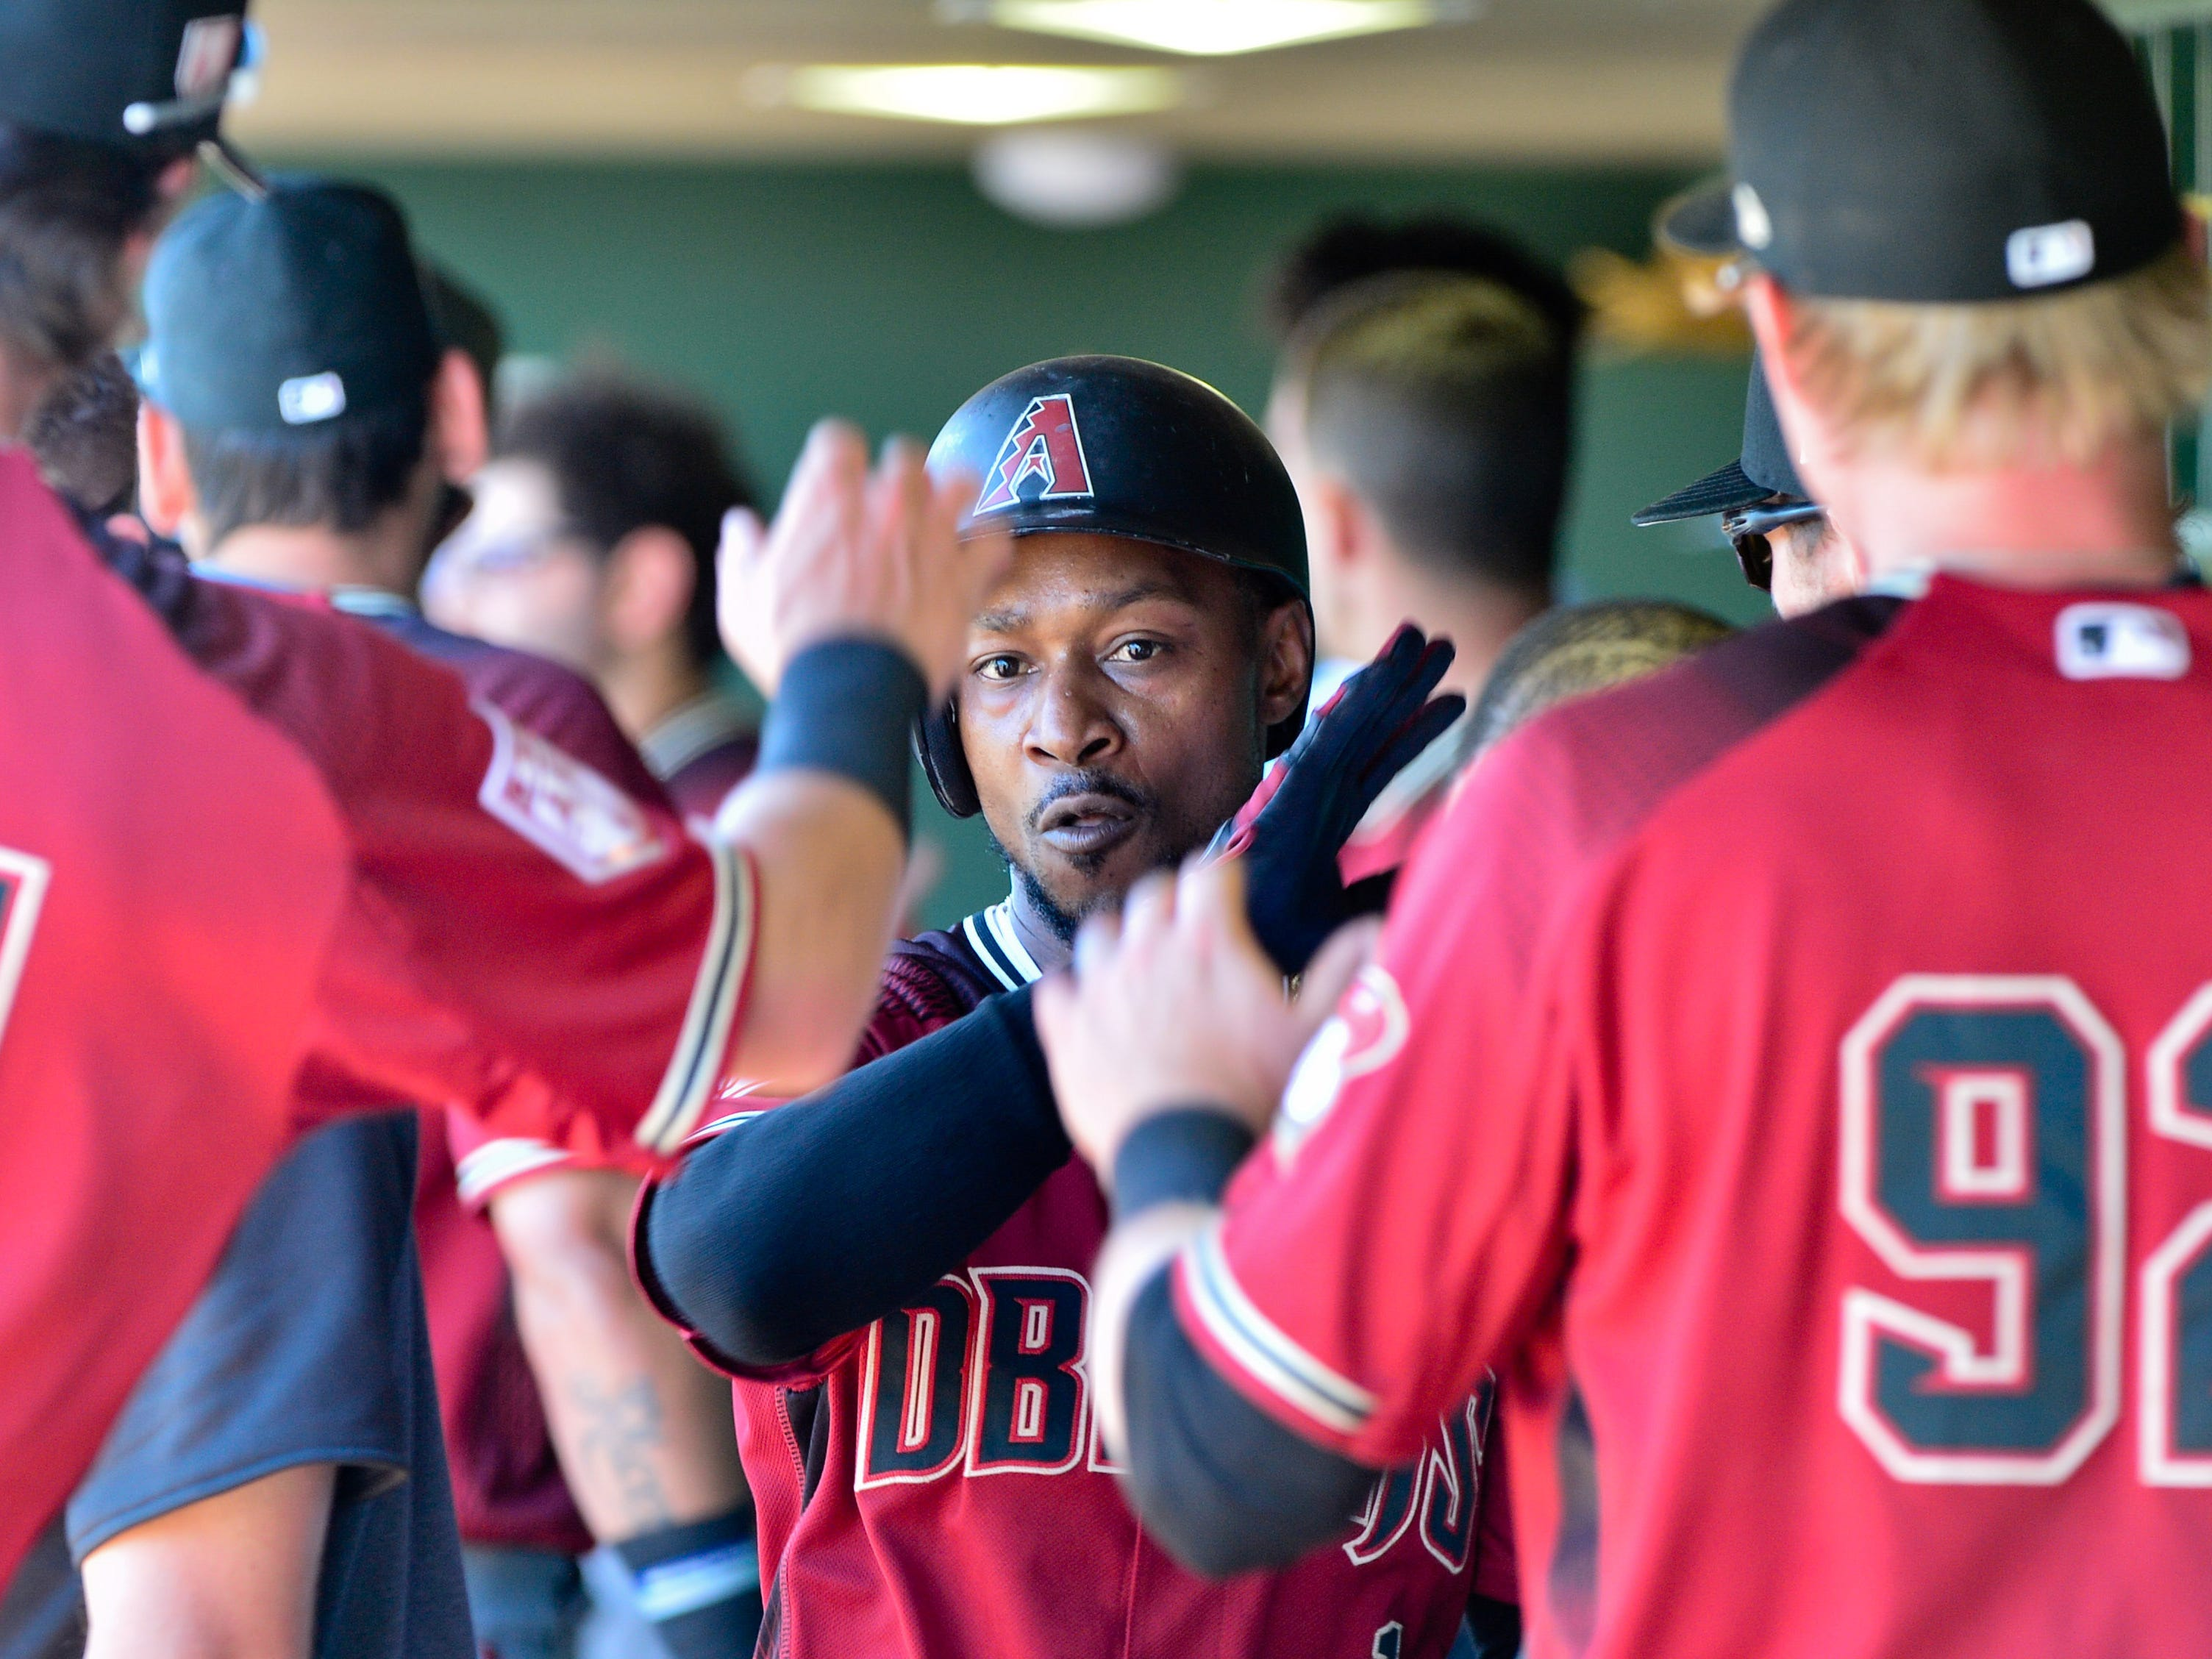 Mar 23, 2019; Scottsdale, AZ, USA; Arizona Diamondbacks center fielder Jarrod Dyson (1) celebrates with teammates during the first inning after scoring a run against the San Francisco Giants at Scottsdale Stadium.